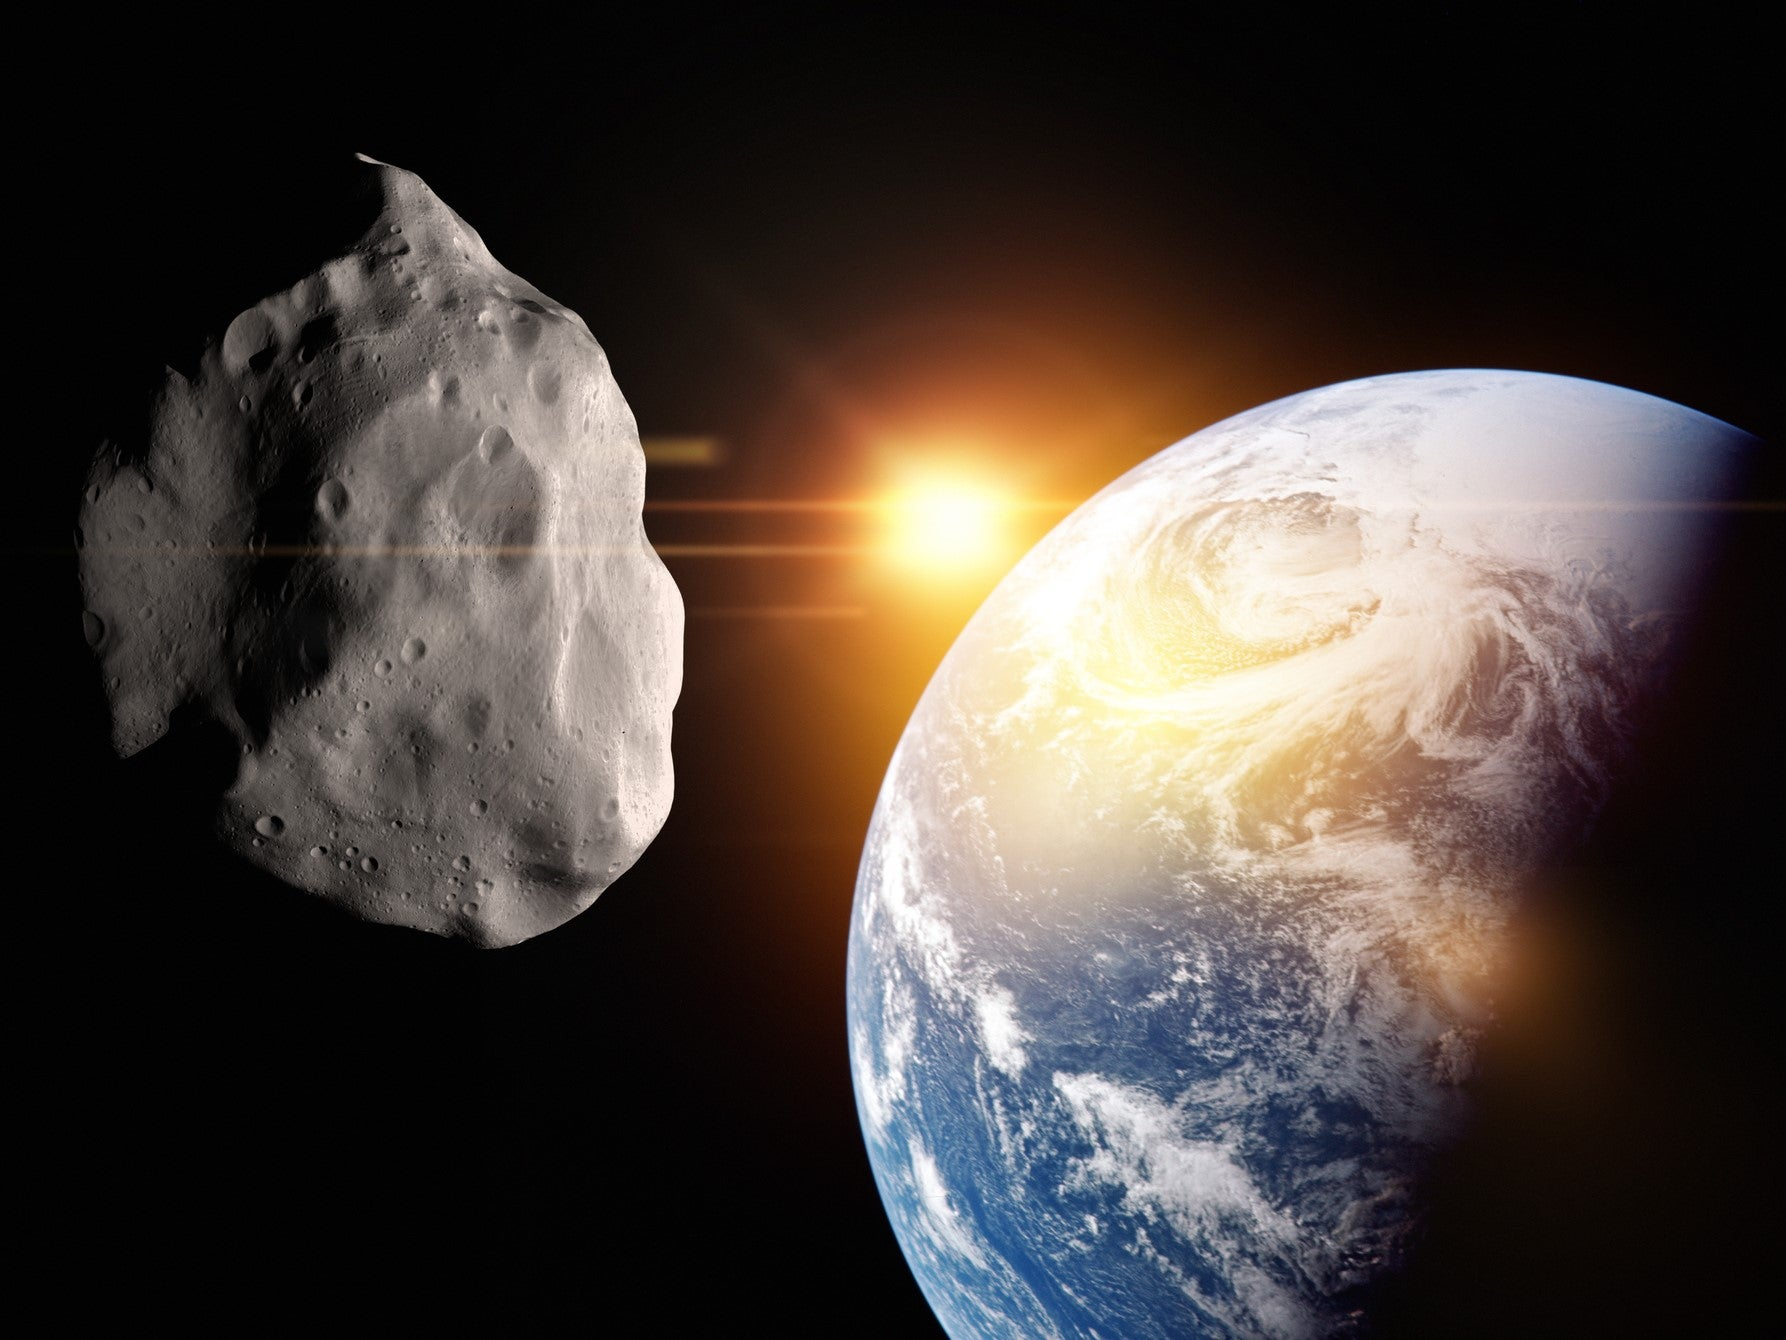 China to launch asteroid-mining robot - The Independent